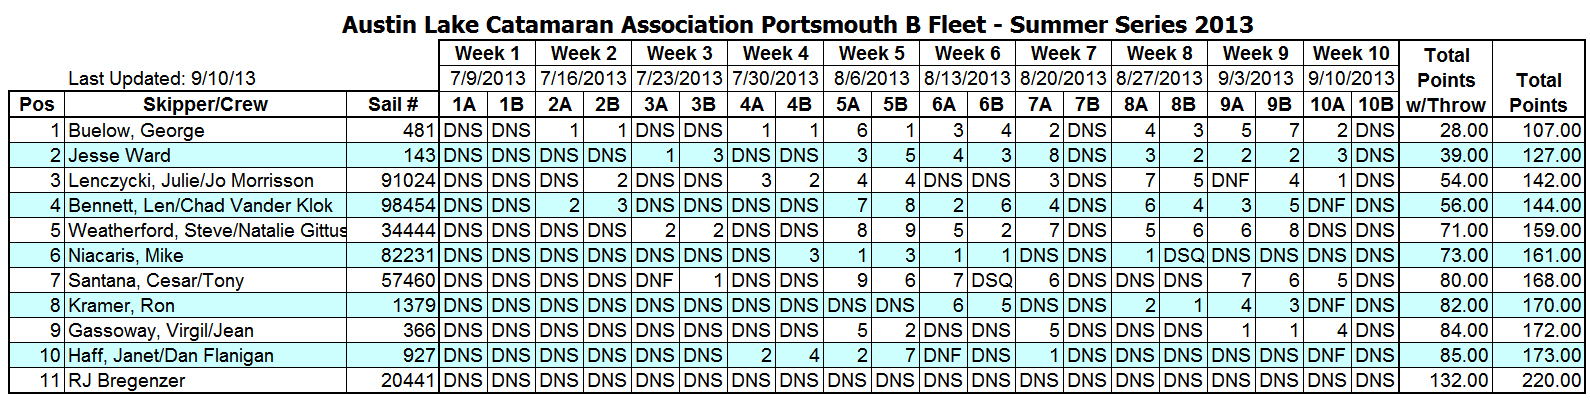 2013 Summer Portsmouth B Fleet Results